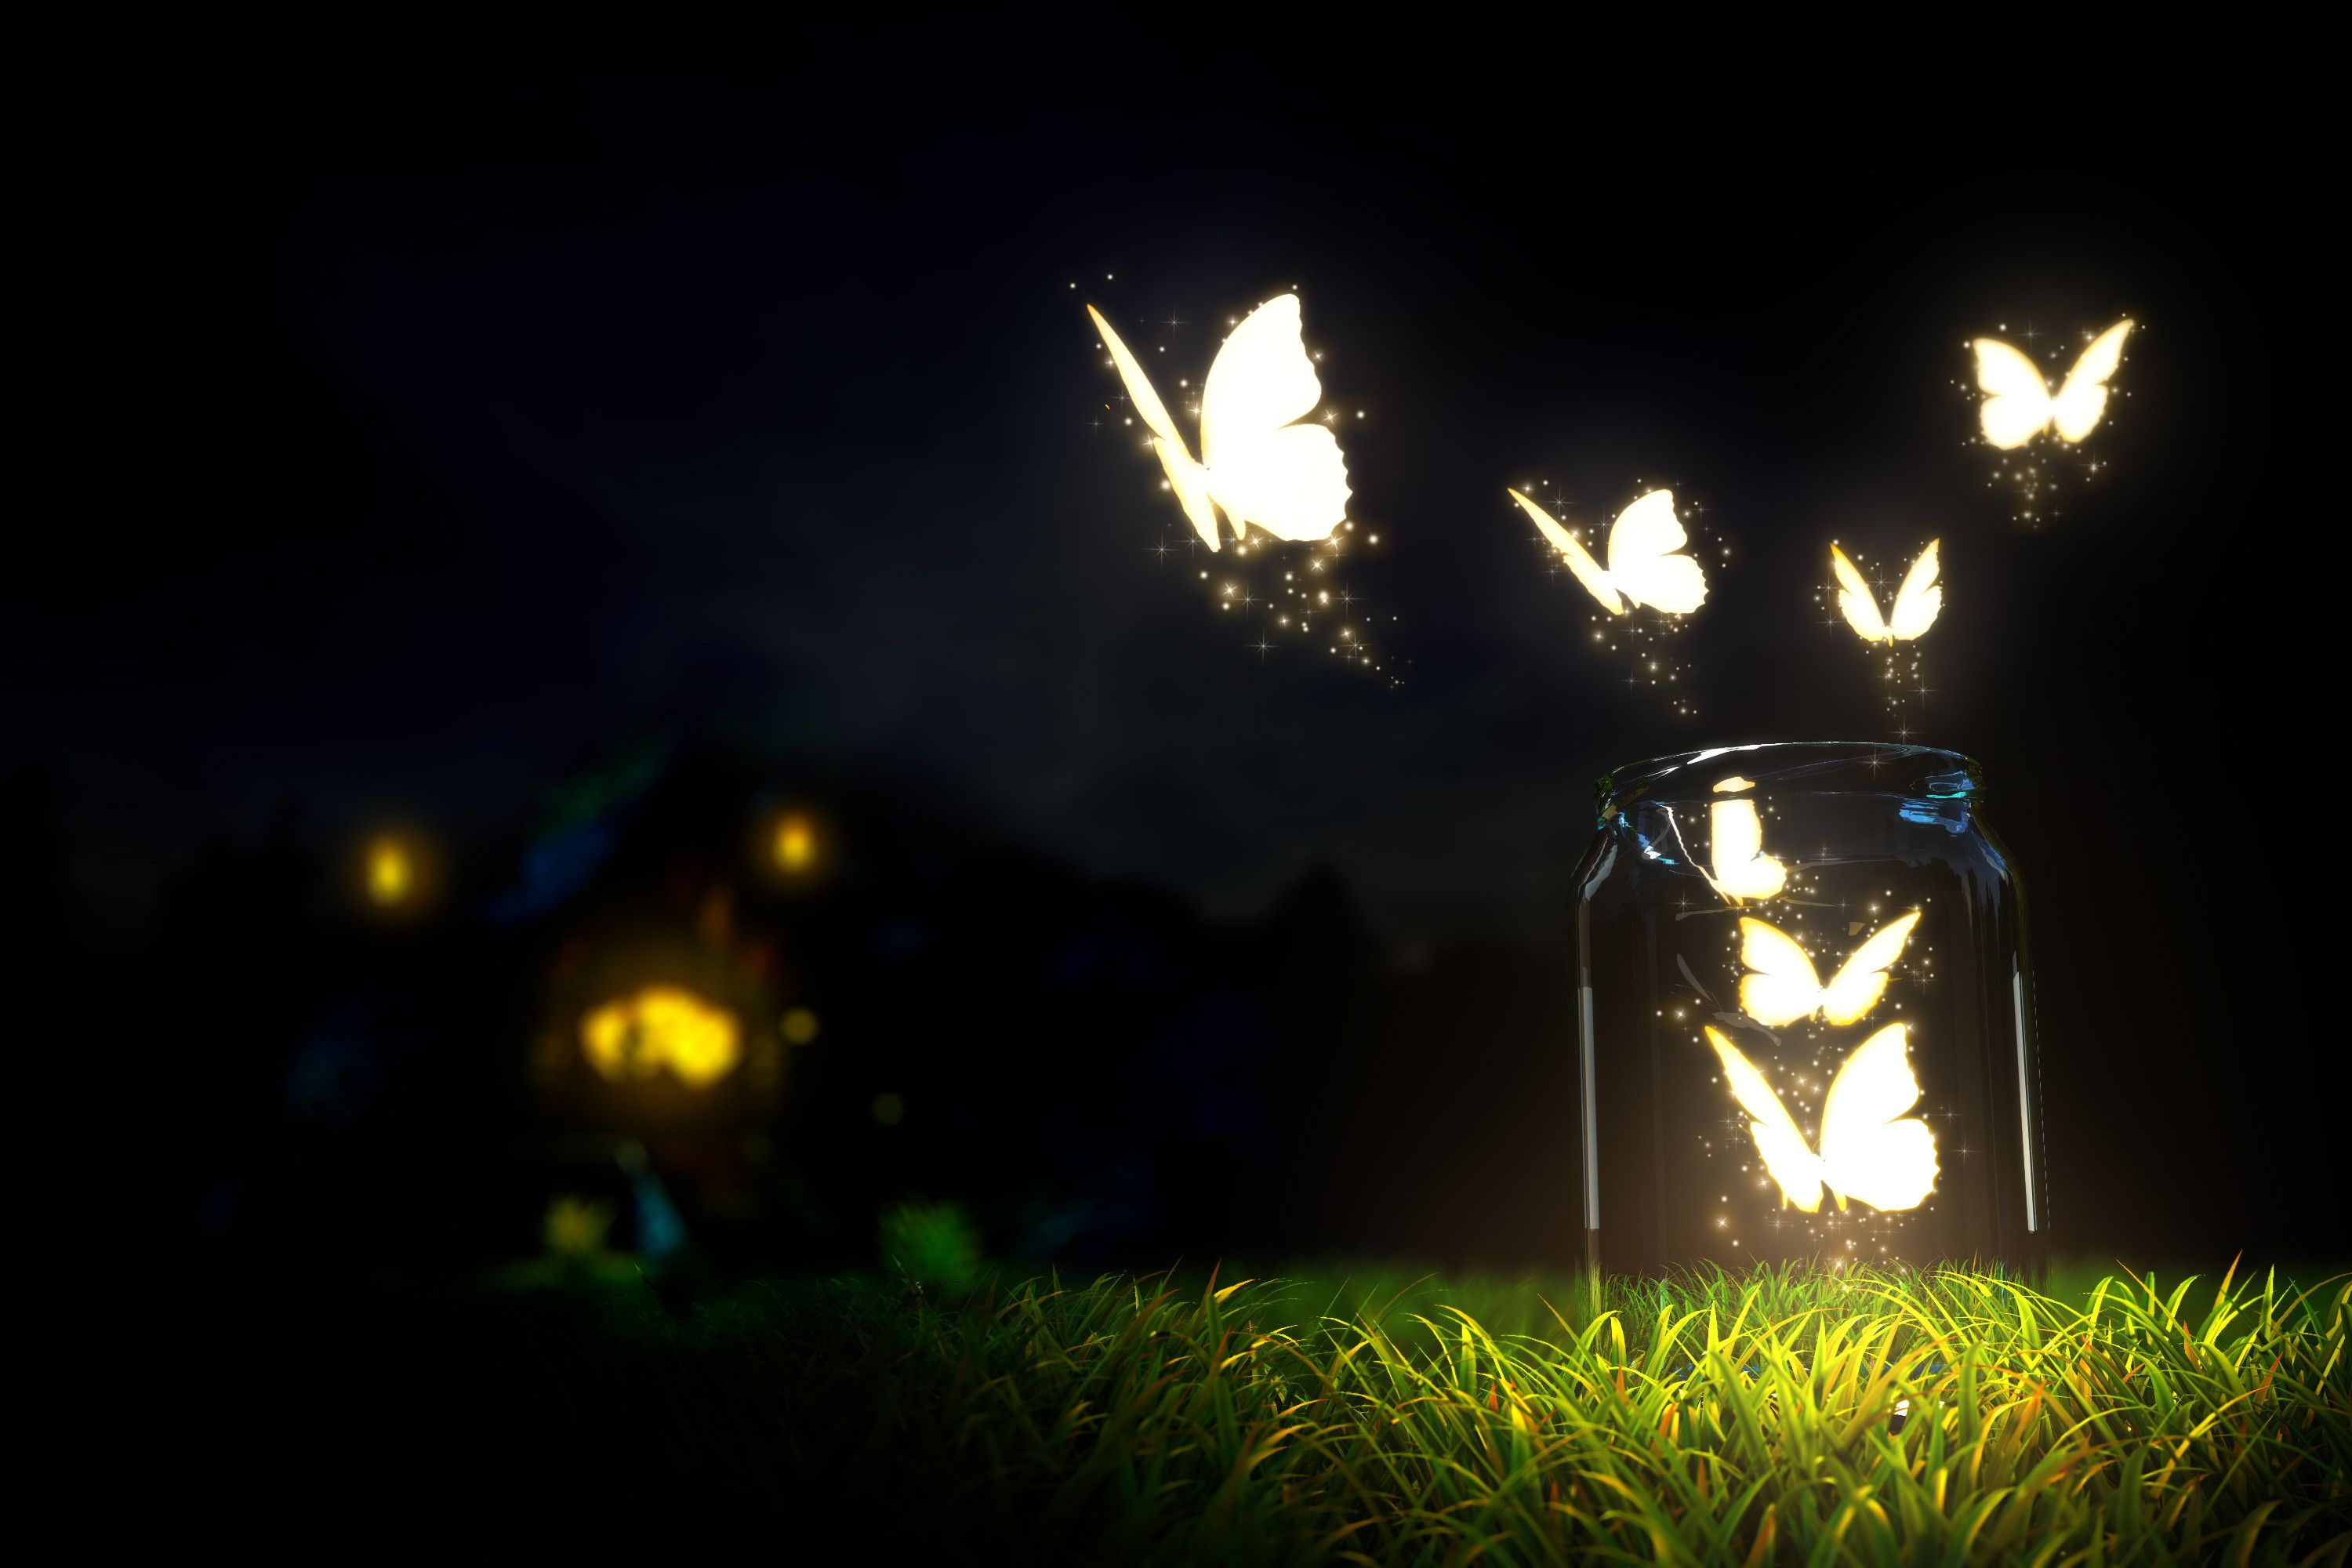 Glowing Butterflies Lighting In The Dark Beautiful Nature Landscapes Desktop Wallpapers Awsome Landscape Wallpapers Hd Wallpaper D Kupu Kupu Bintang Malam